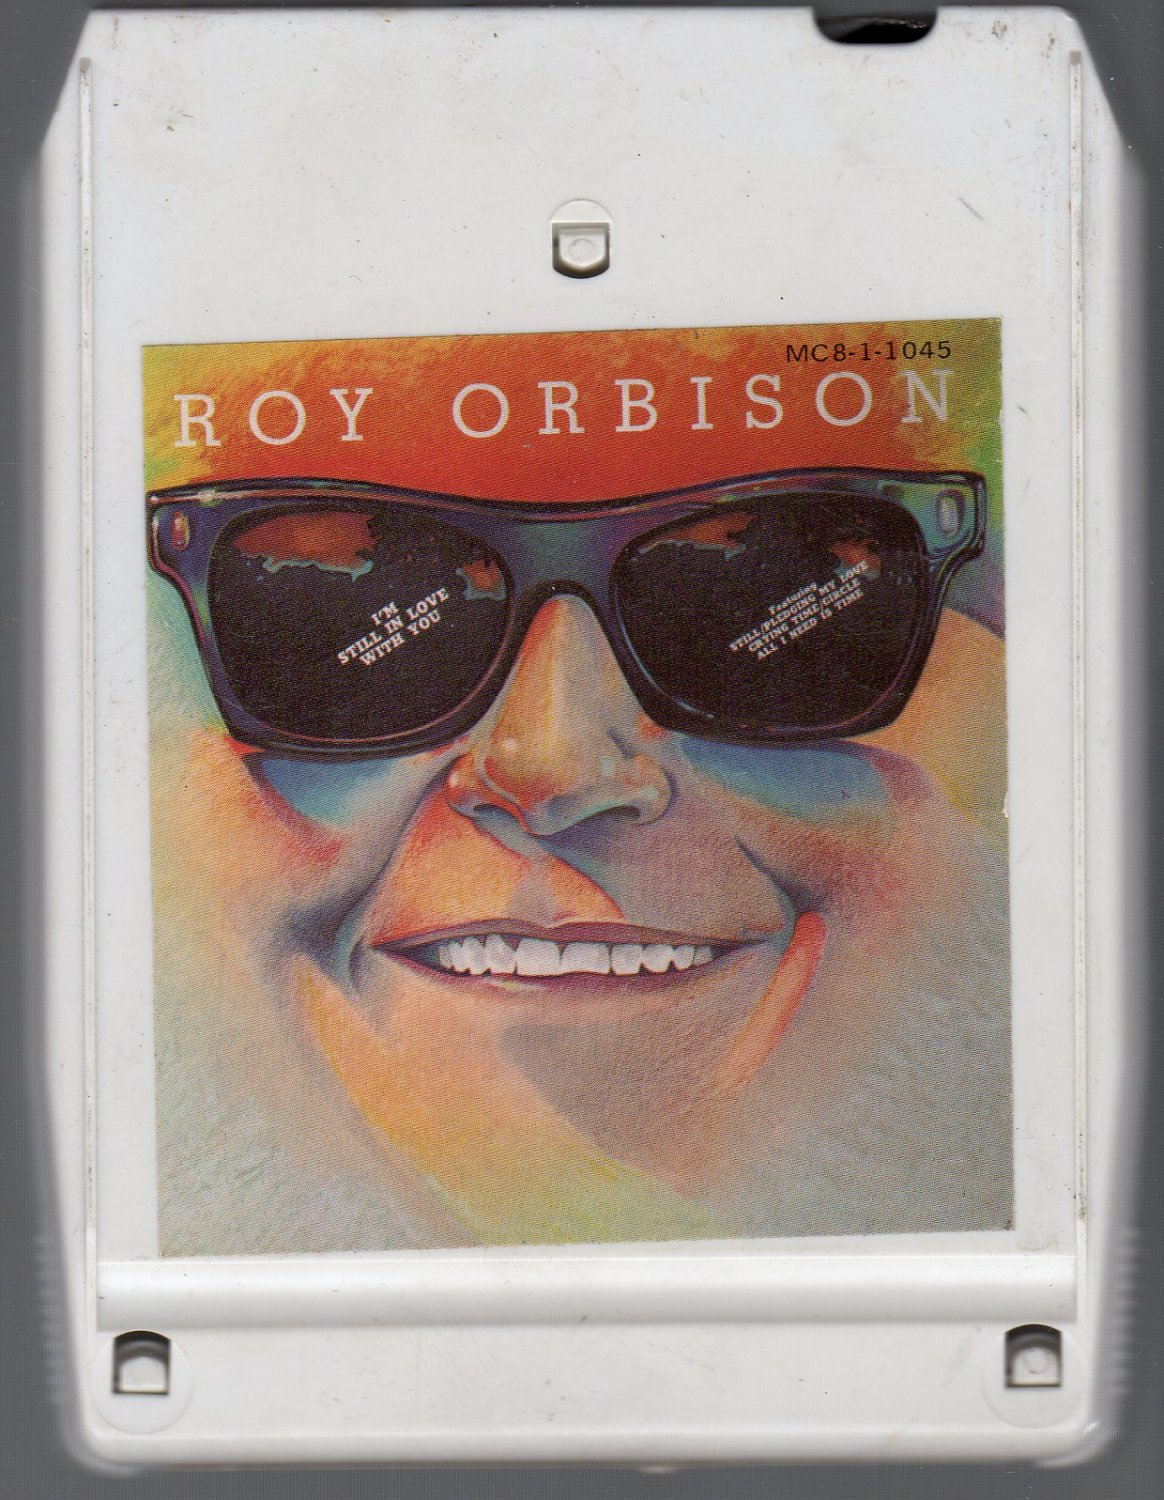 Roy Orbison - I'm Still In Love With You 8-track tape